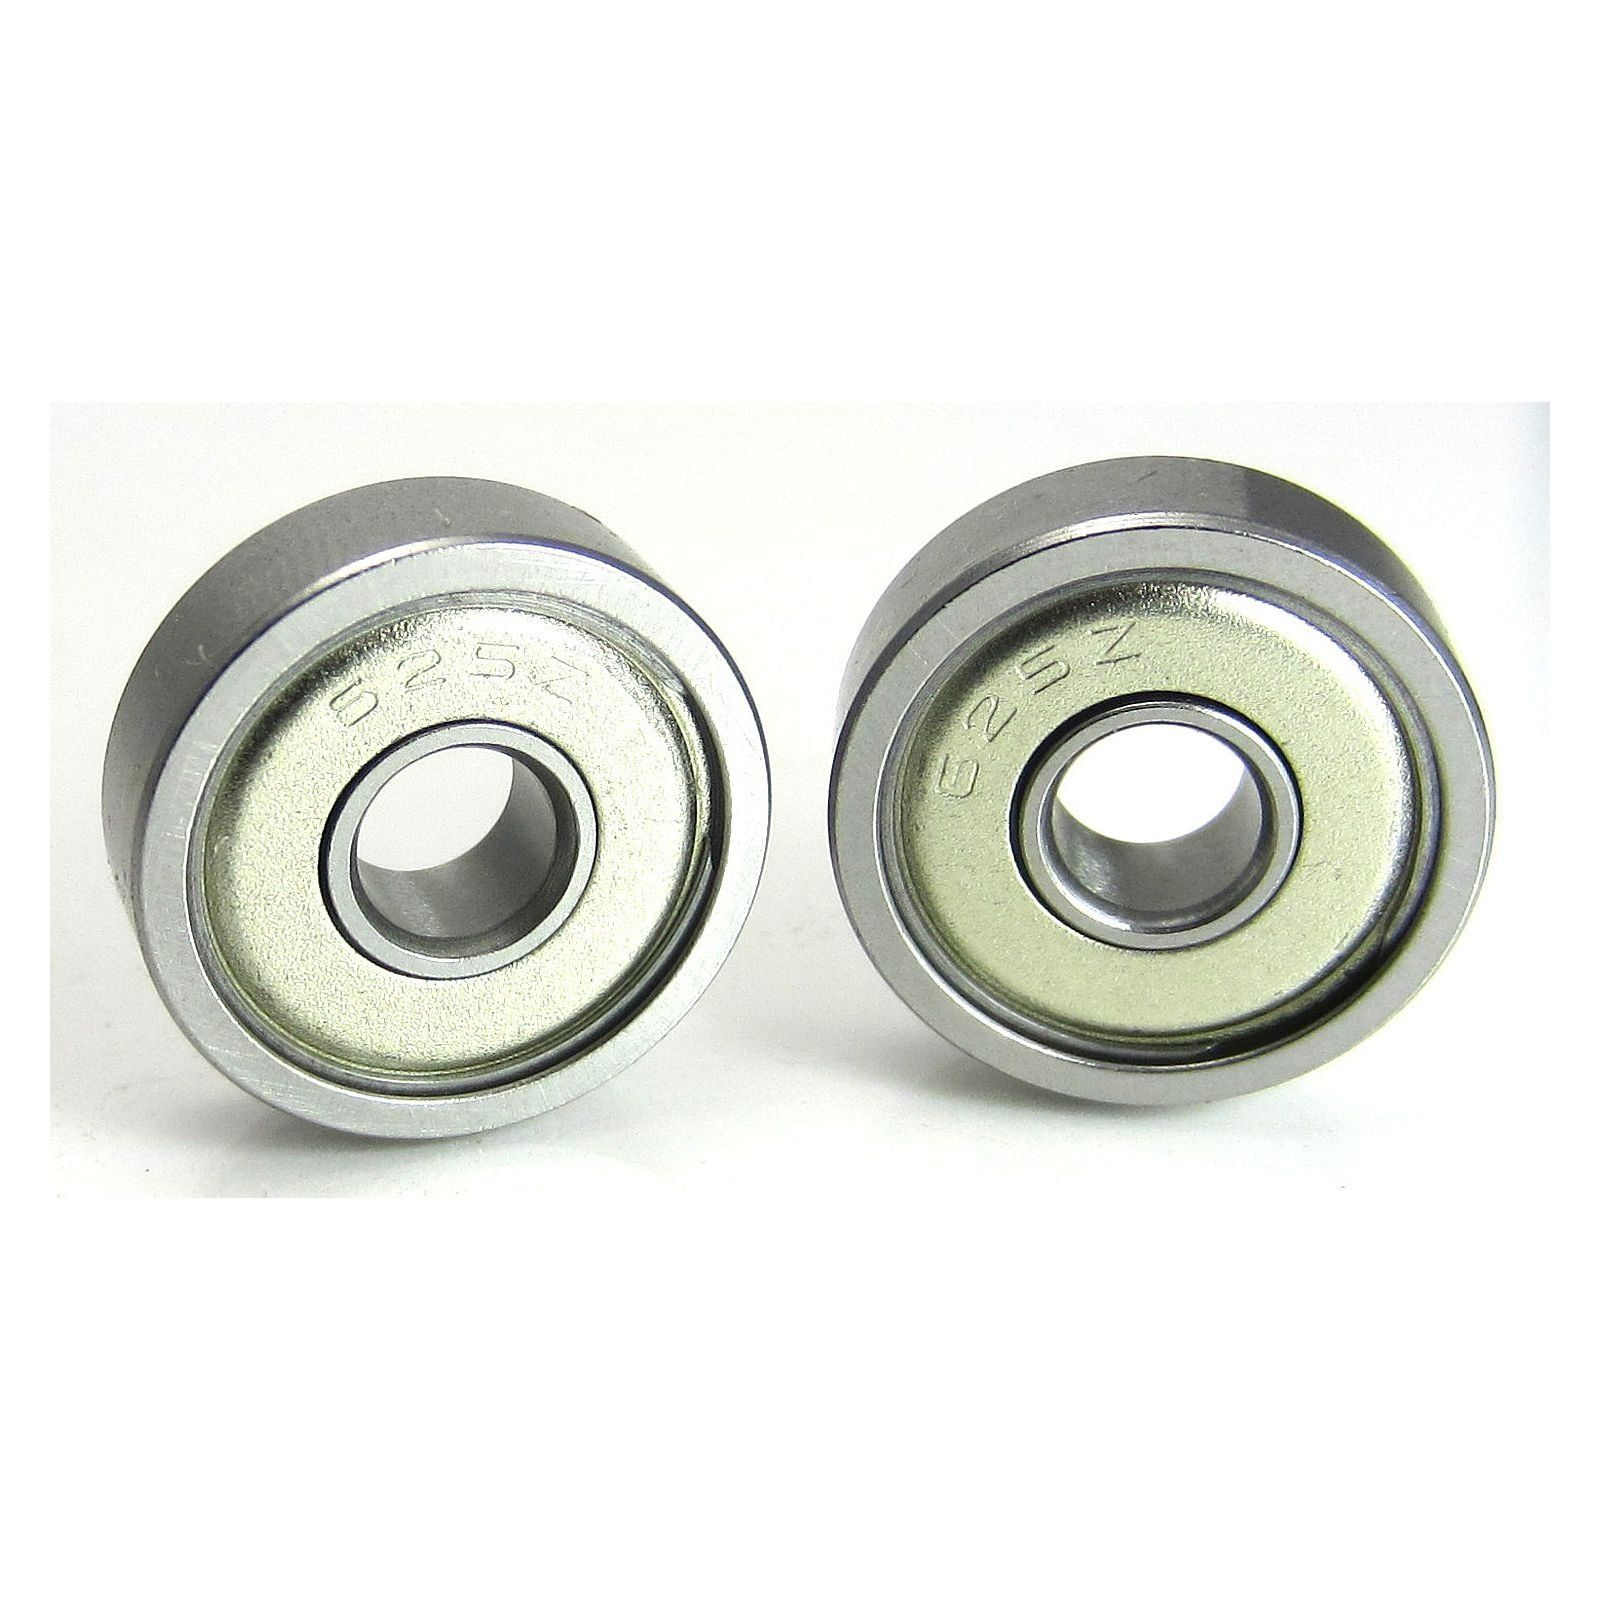 TRB RC Brushless Motor Ball Bearings CASTLE 2200 SERIES - 2,000 - 10,000 WATTS - trb-rc-bearings